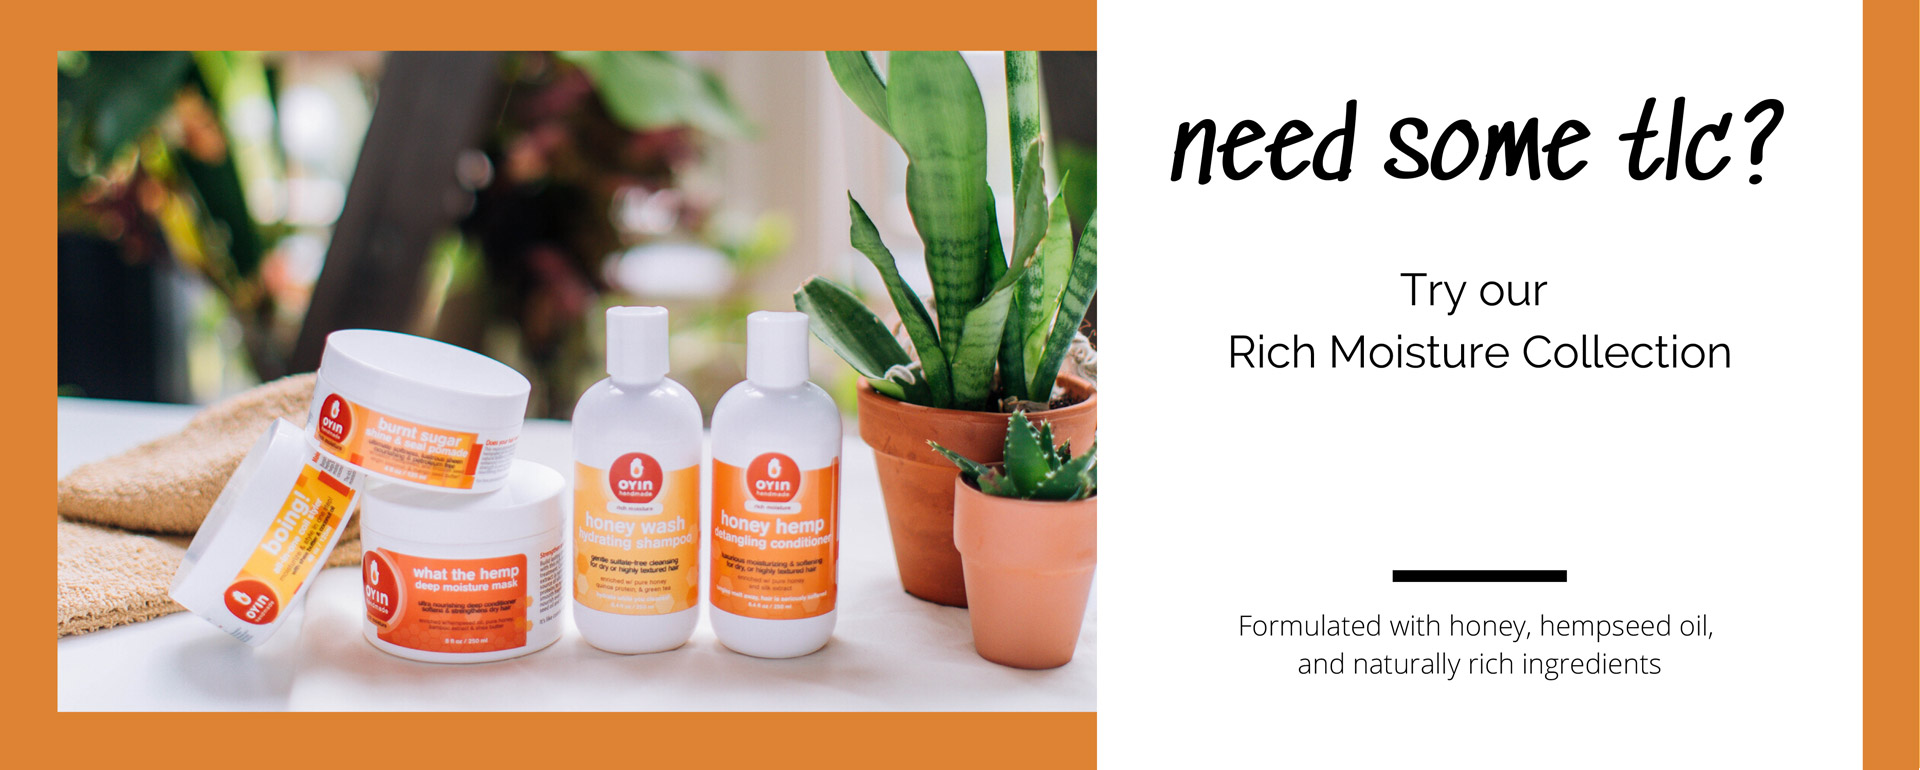 image description: 5 hair products in Oyin Rich Moisture collection, grouped on a table with houseplants. text reads: 'need some TLC? try our rich moisture collection. formulated with honey, hempseed oil, and naturally rich ingredients'need some TLC?